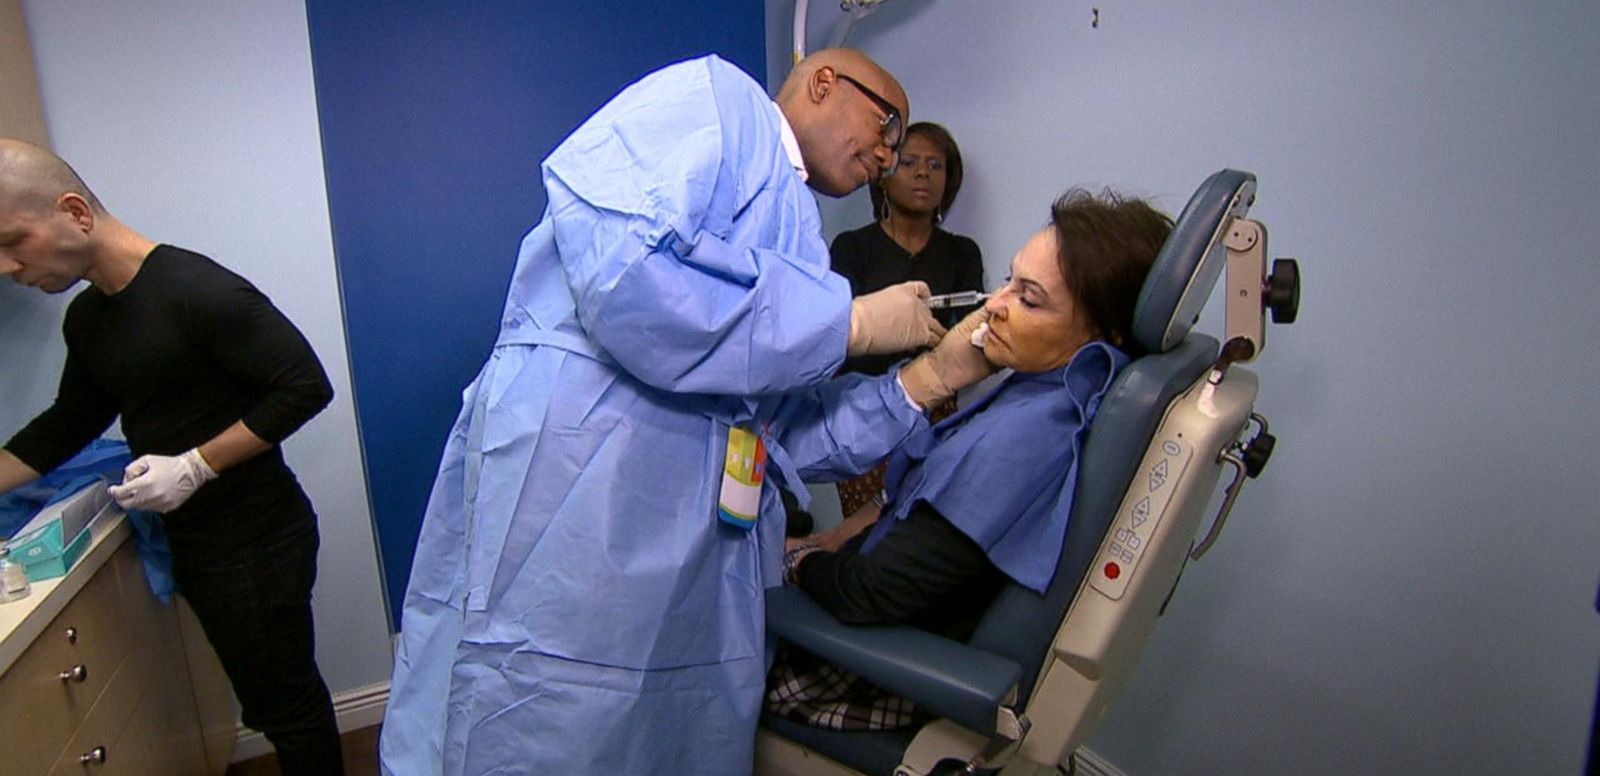 VIDEO: Non-Surgical Facelift Promises Results for Less Money